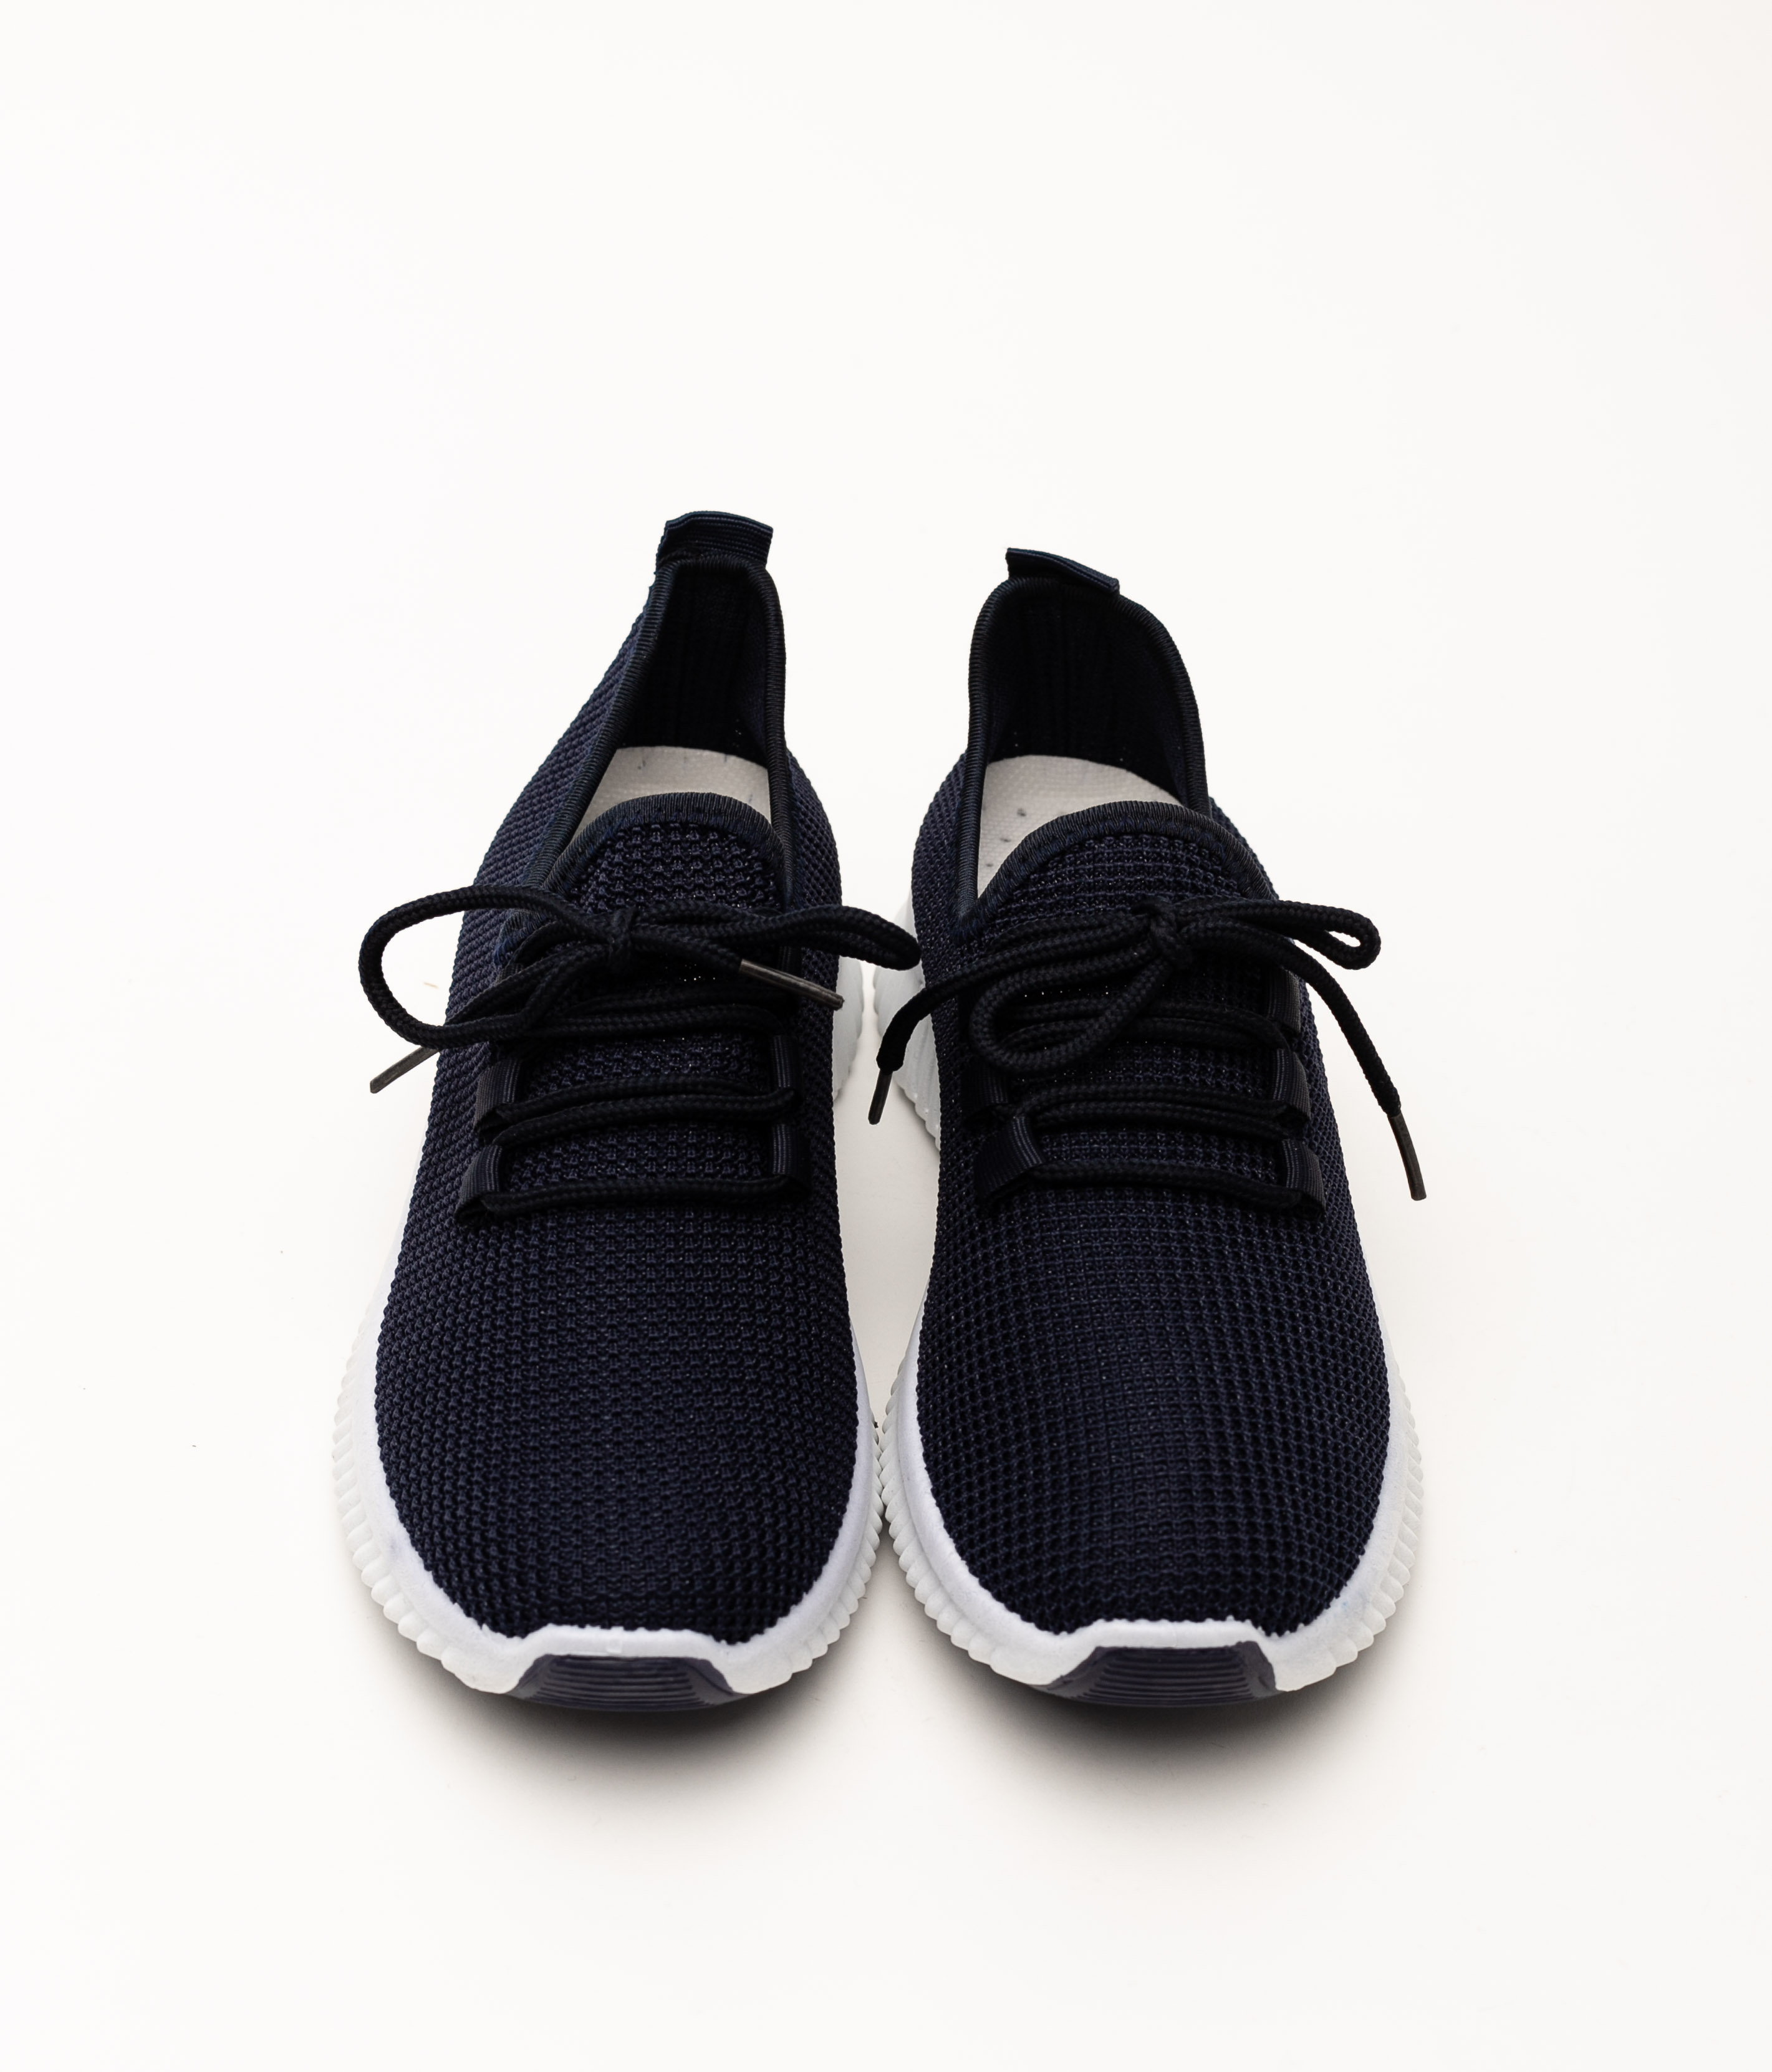 Sneakers Limpore - Dark Navy